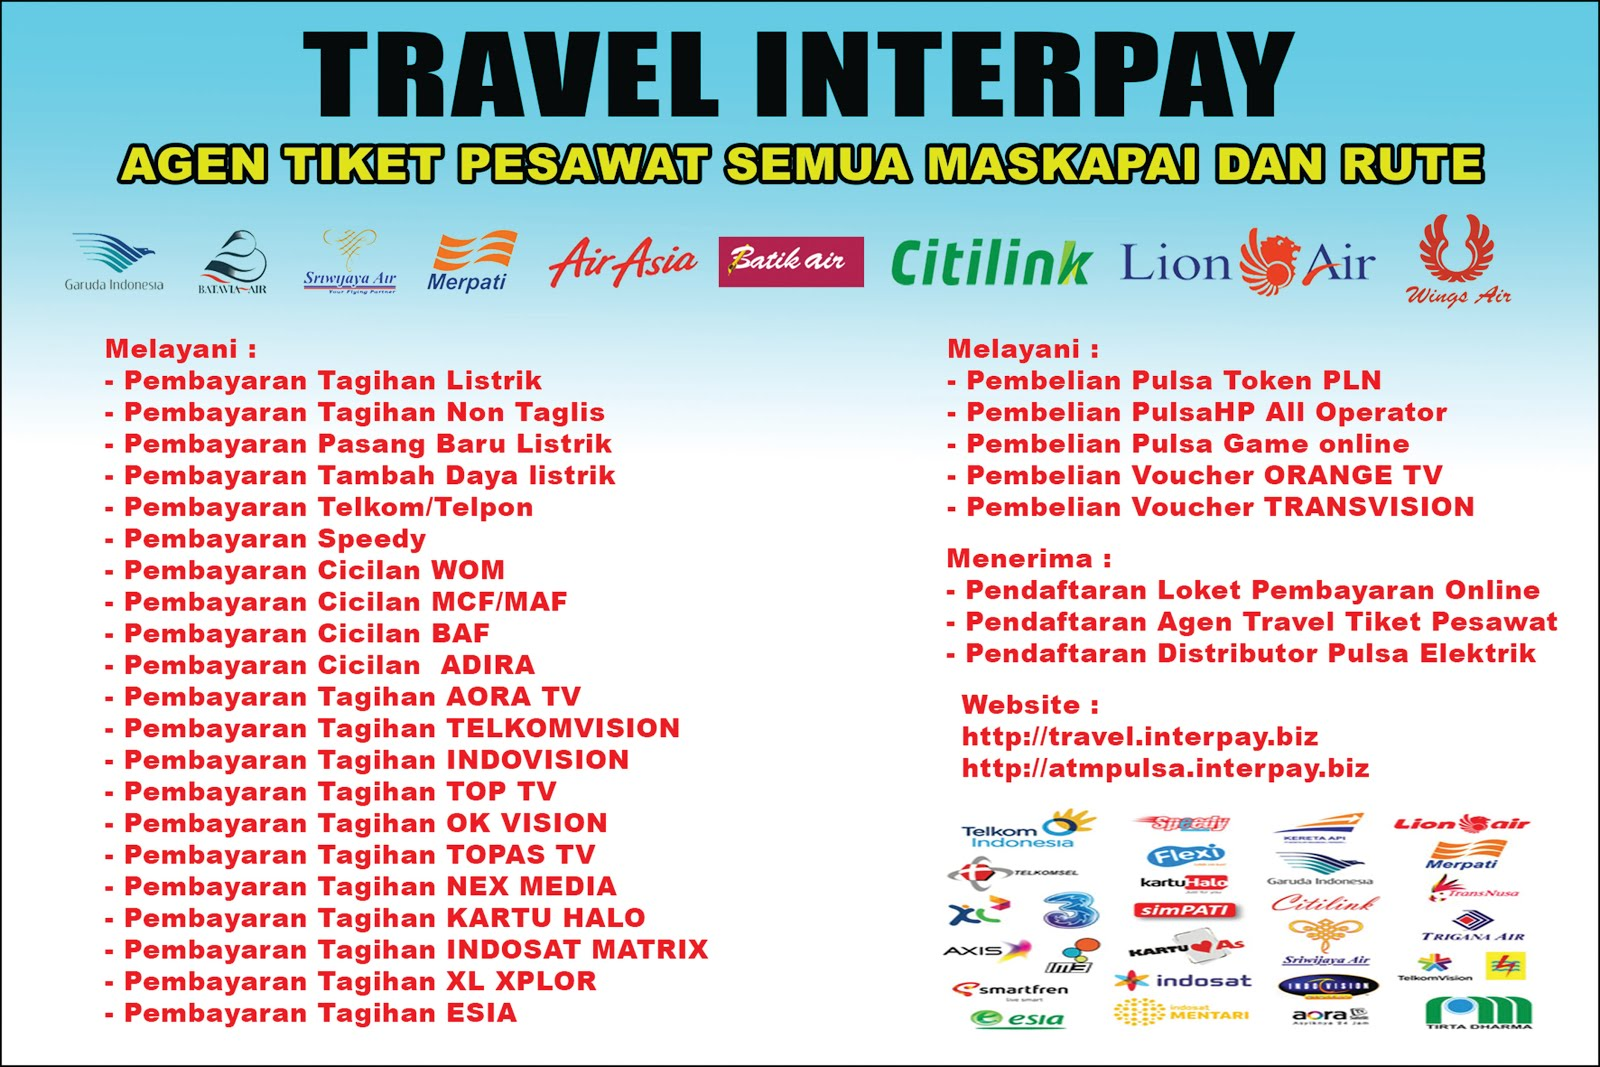 AGEN TRAVEL INTERPAY